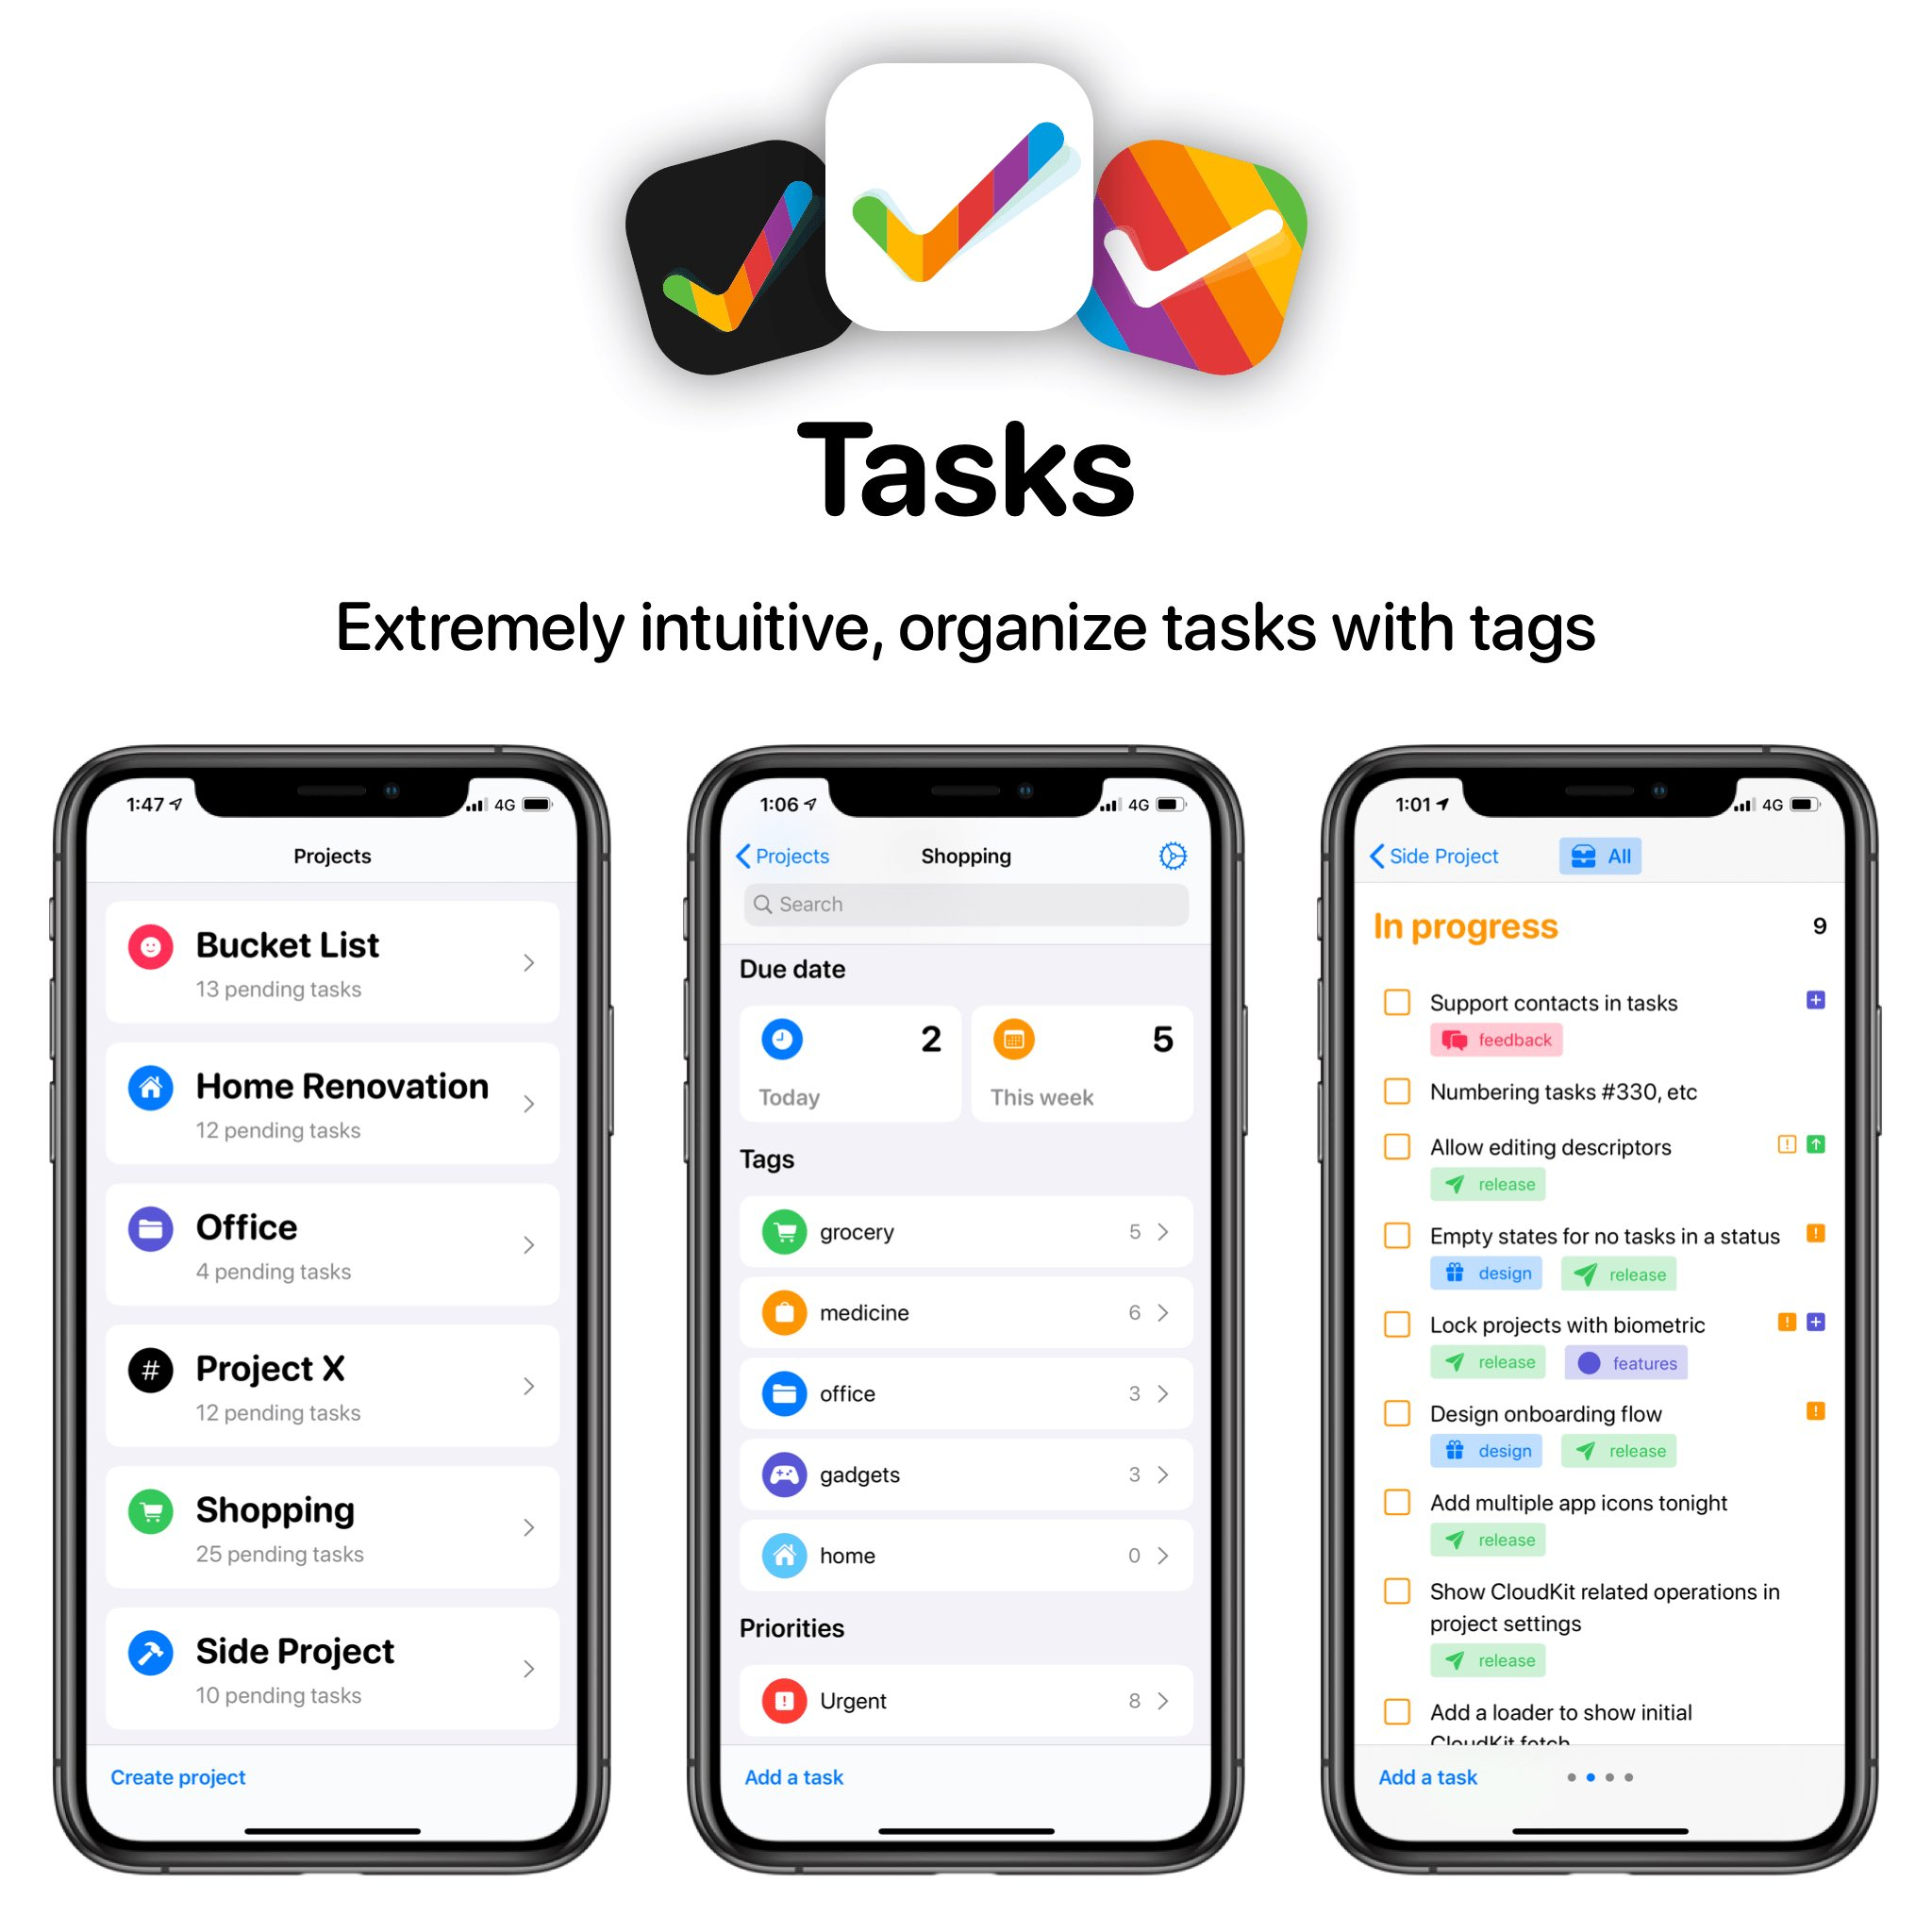 Tasks app op iPhone en iPad.